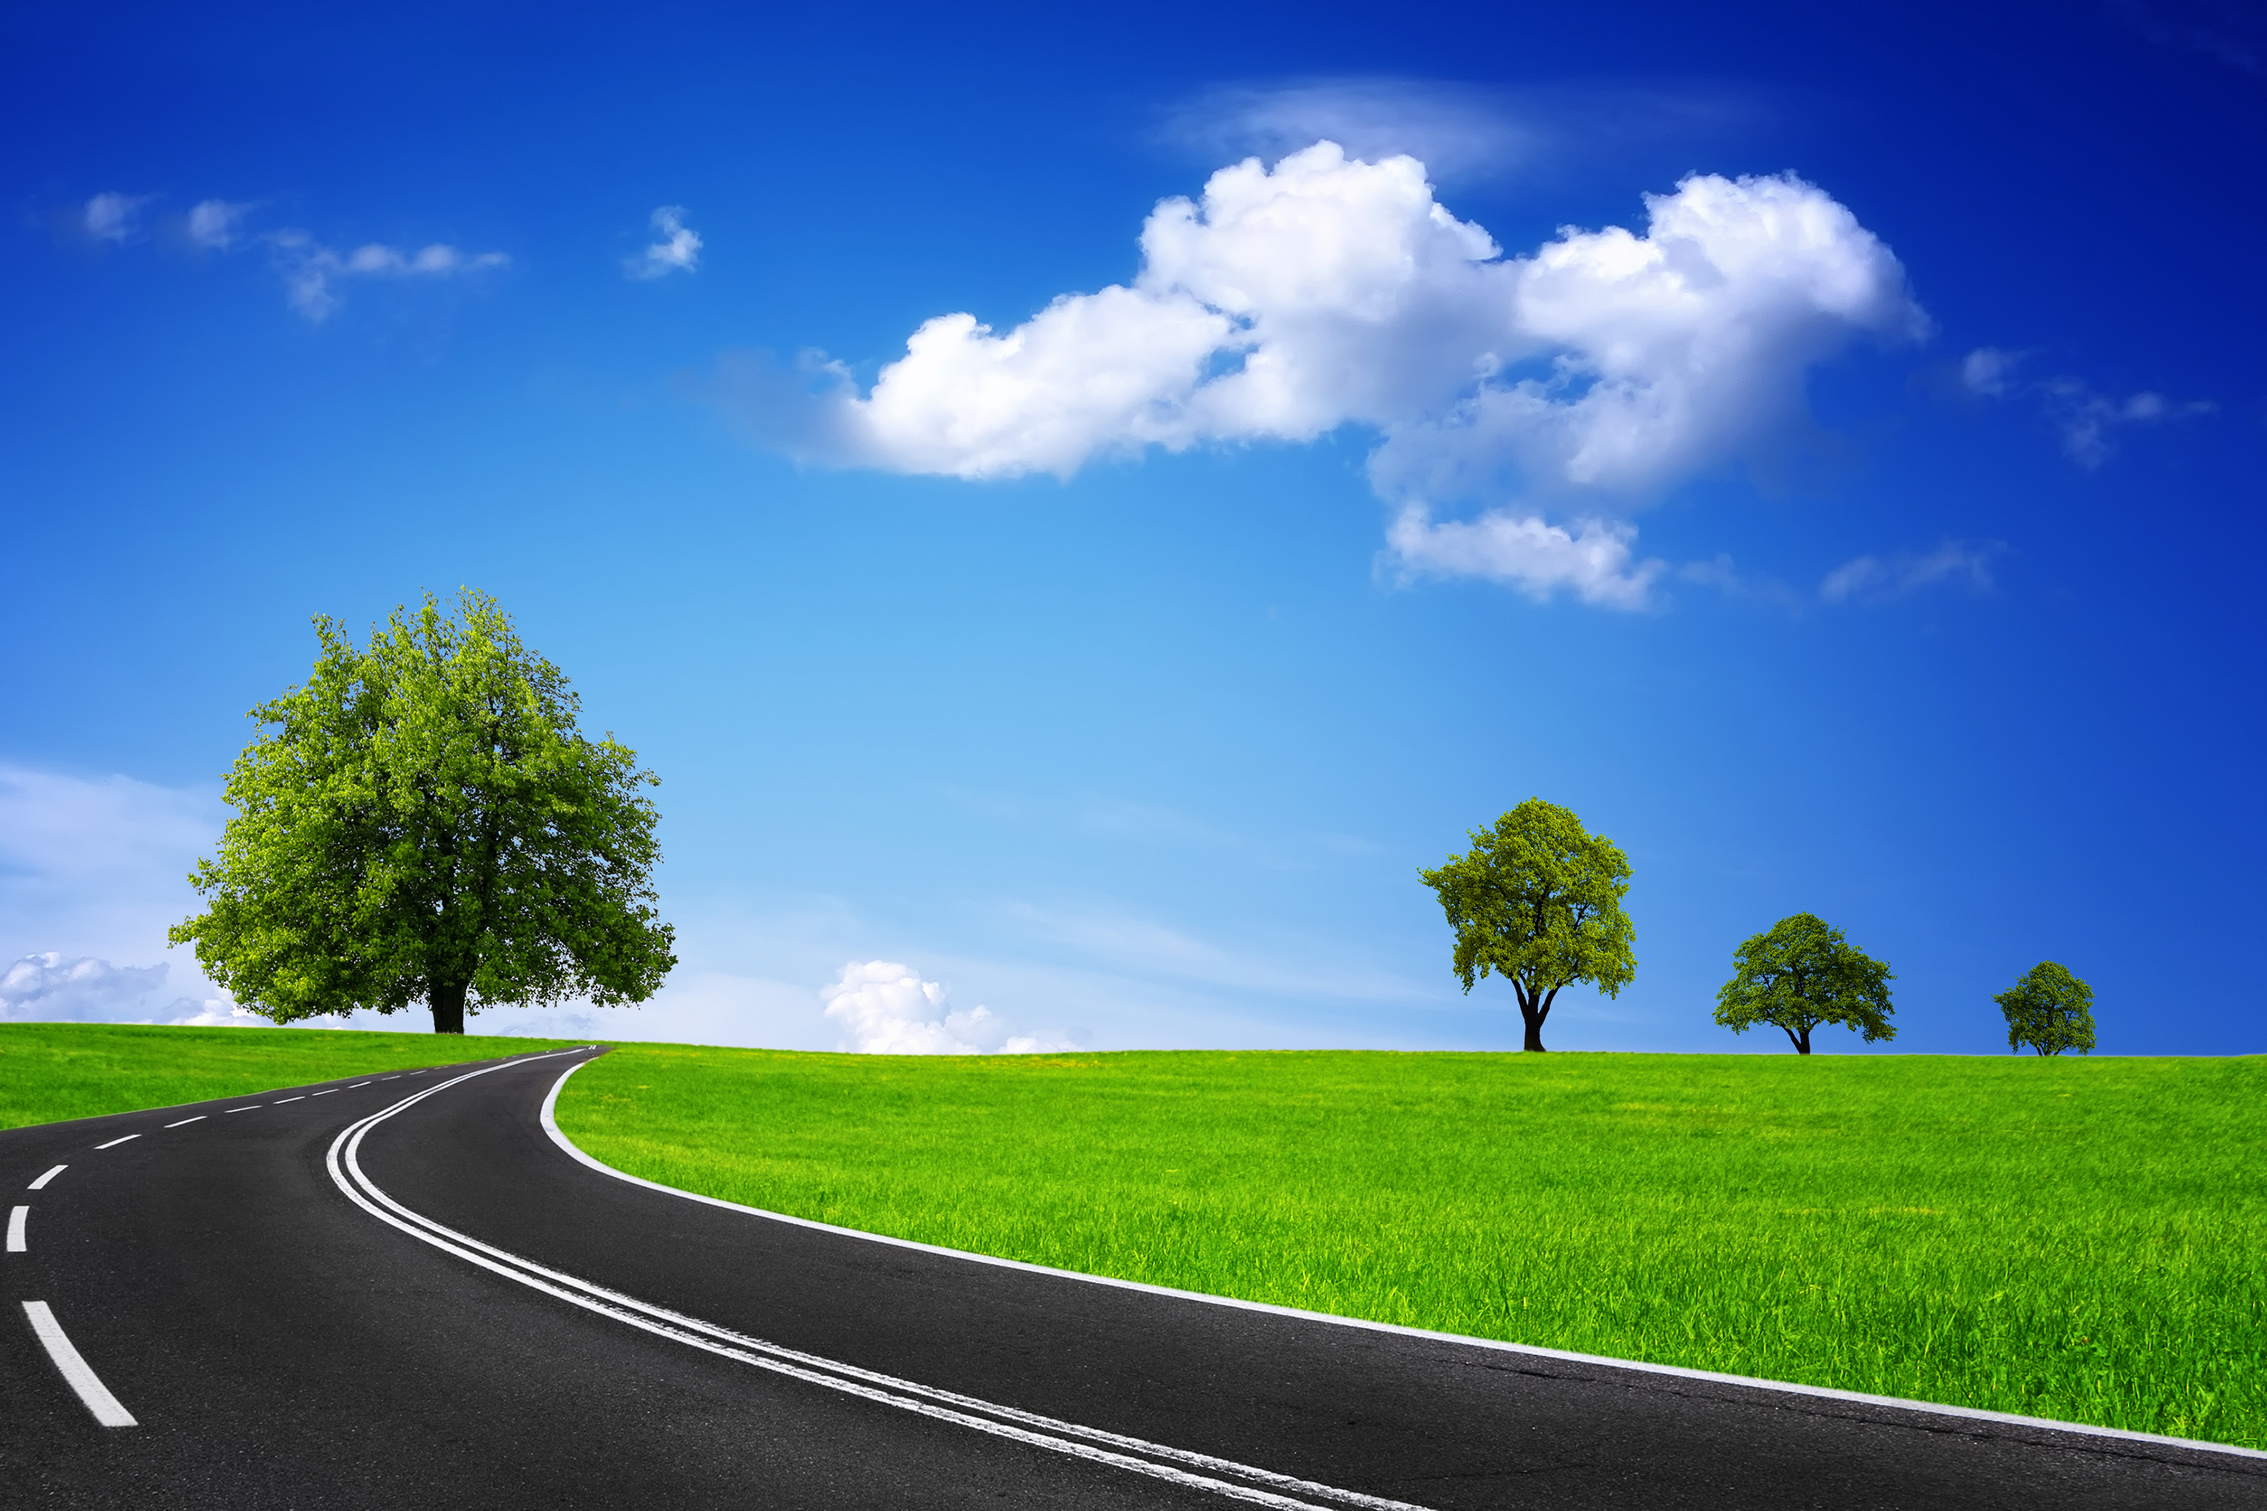 Freeway clipart road background #7